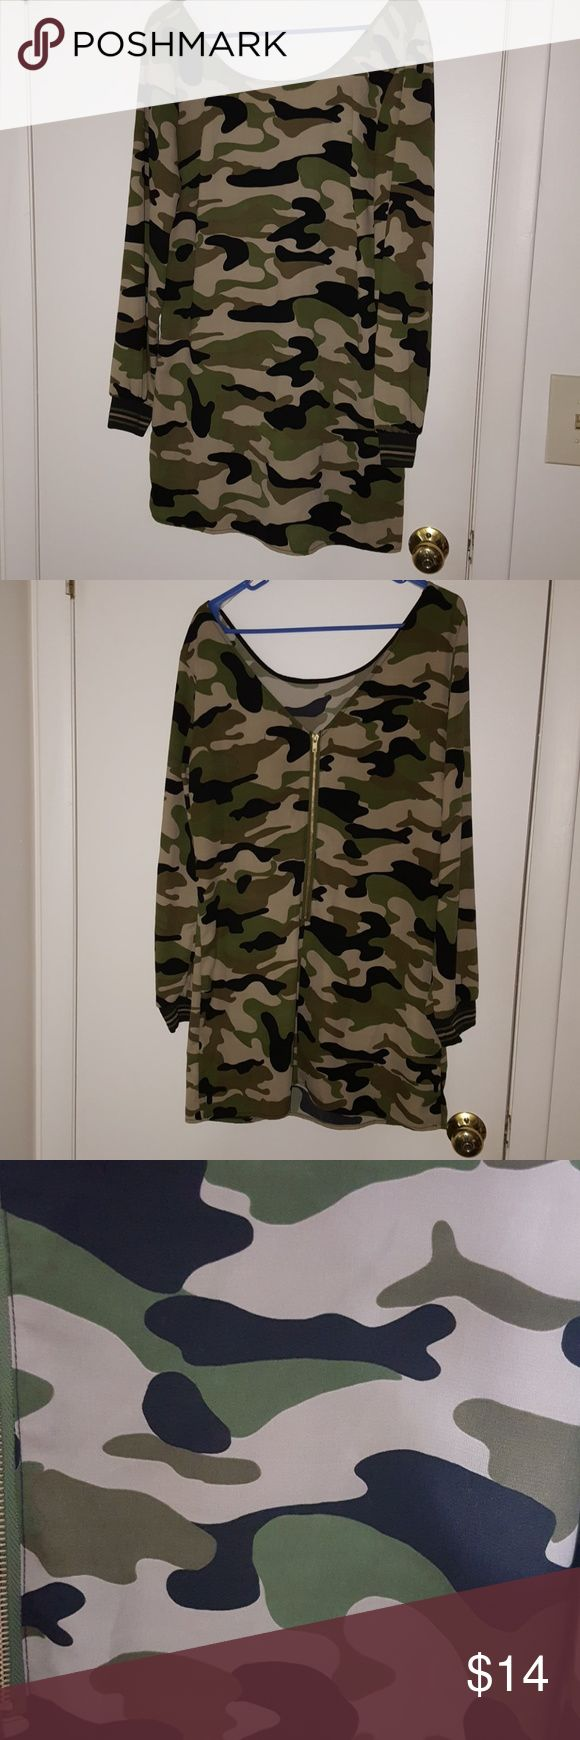 GB Camouflage Dress/Shirt Brand: GB Size: L Color: Tan, Black, Green Style: Longsleeve Dress/Shirt  LARGE IS NOT TRUE TO SIZE, FITS LIKE A MEDIUM  Buyers can expect: Careful packaging, Fast shipping, & Delivery confirmation with each item purchased! PET FREE HOME & SMOKE-FREE HOME. GB Dresses Long Sleeve